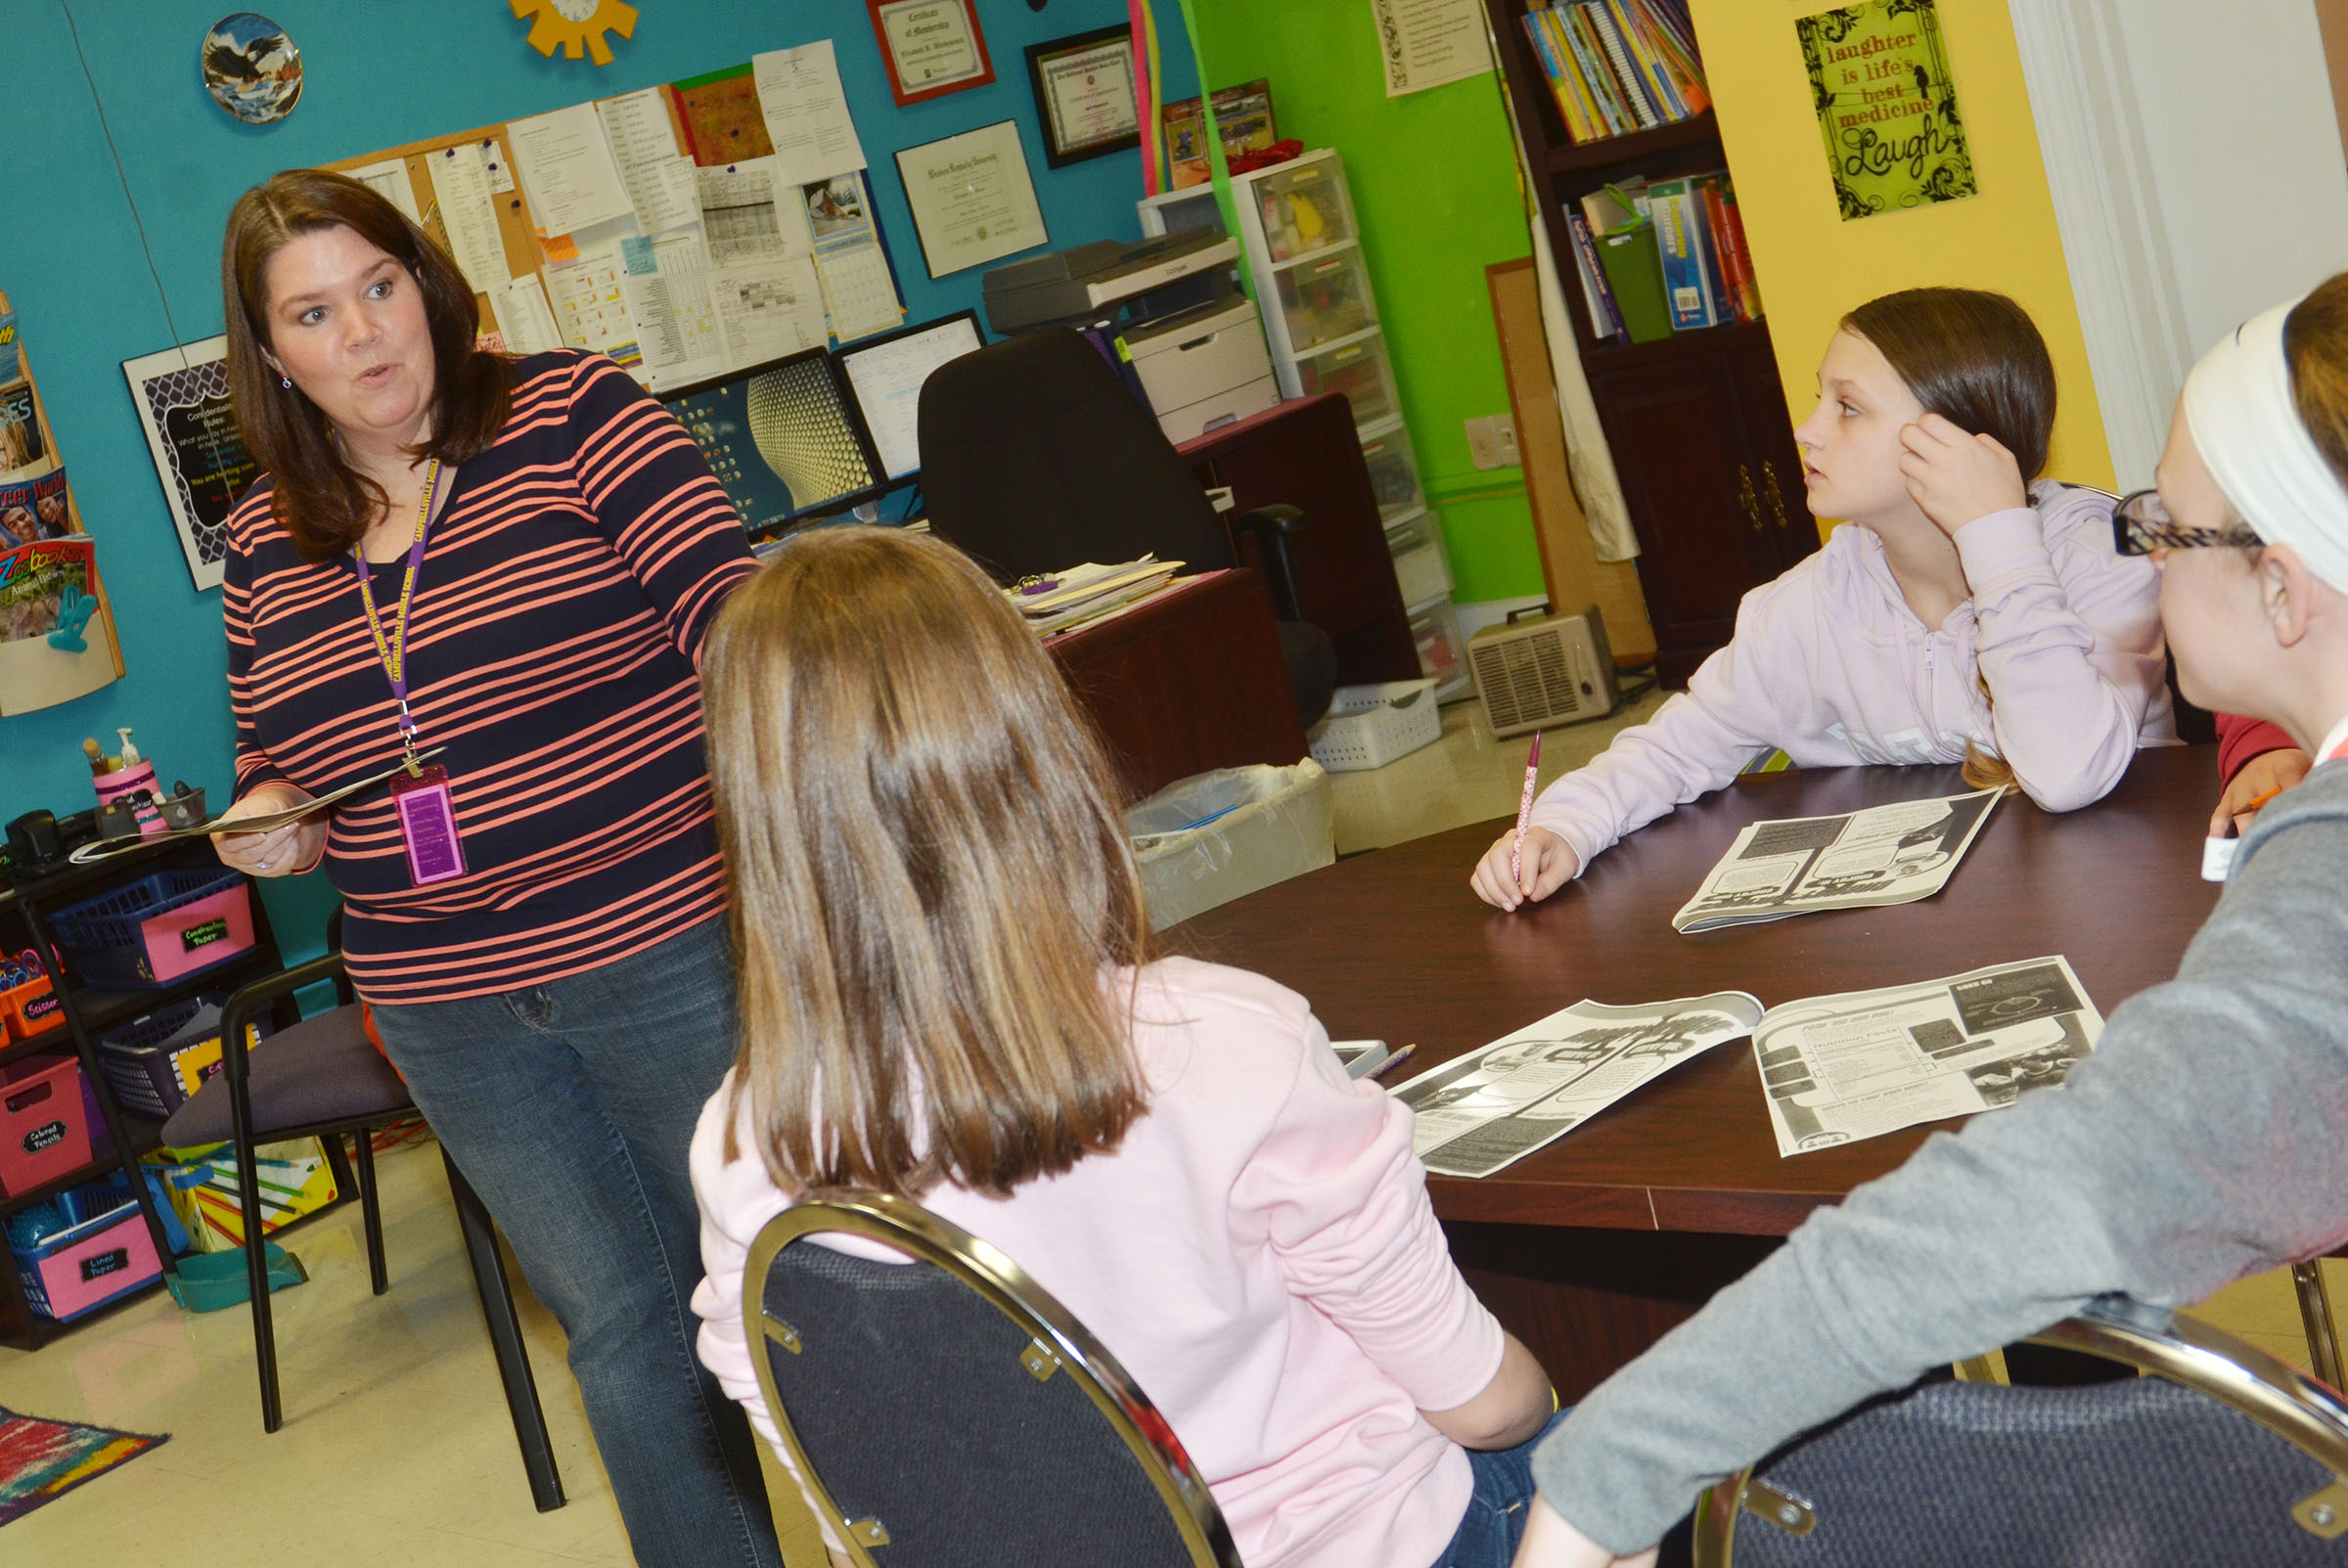 CMS Guidance Counselor Beth Wiedewitsch talks to sixth-grade students about how it's important that they have a healthy body image.